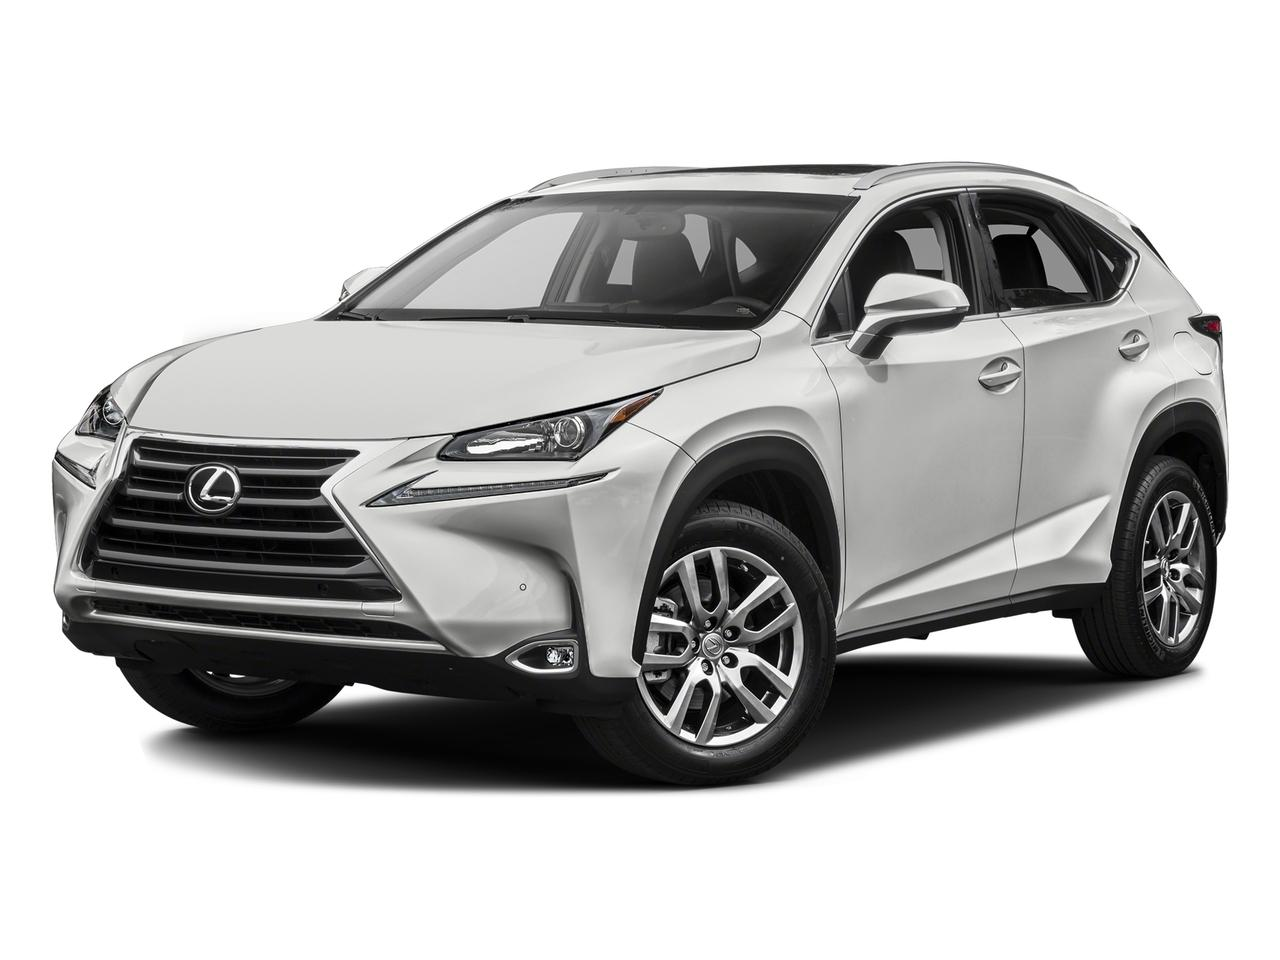 2016 Lexus NX Turbo Vehicle Photo in Rockville, MD 20852